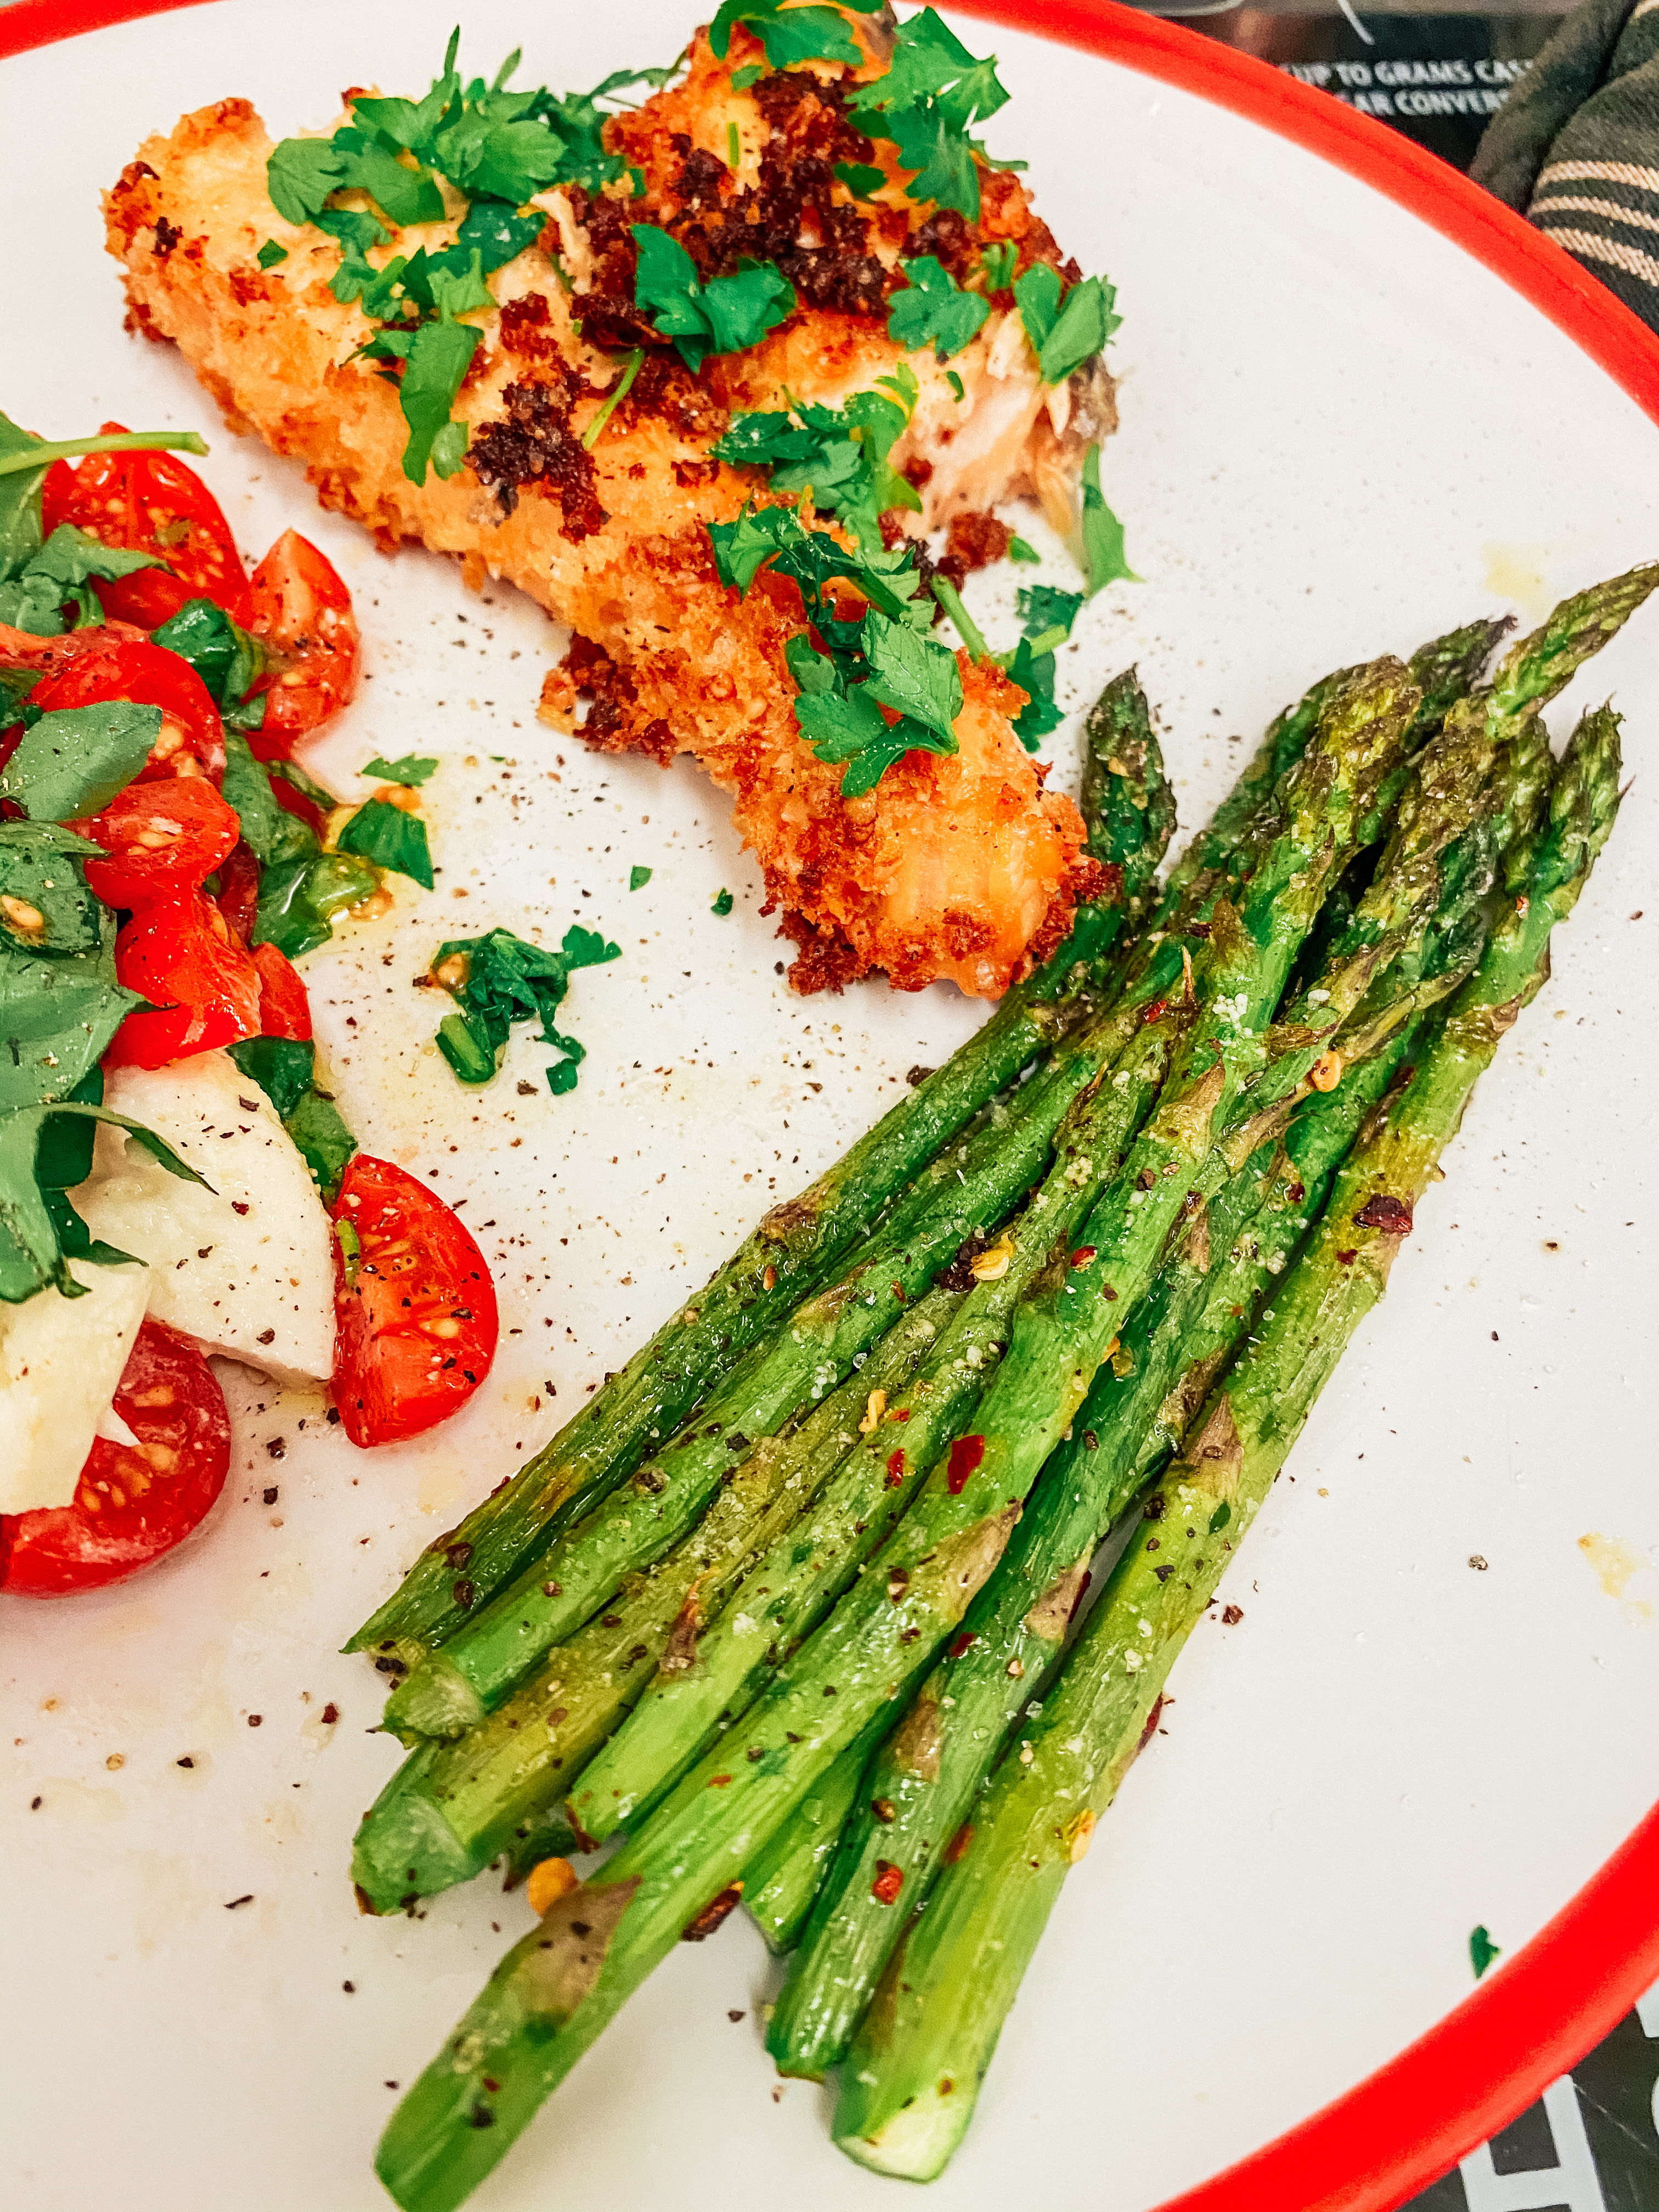 Emmental and herb crusted salmon with asparagus and caprese salad